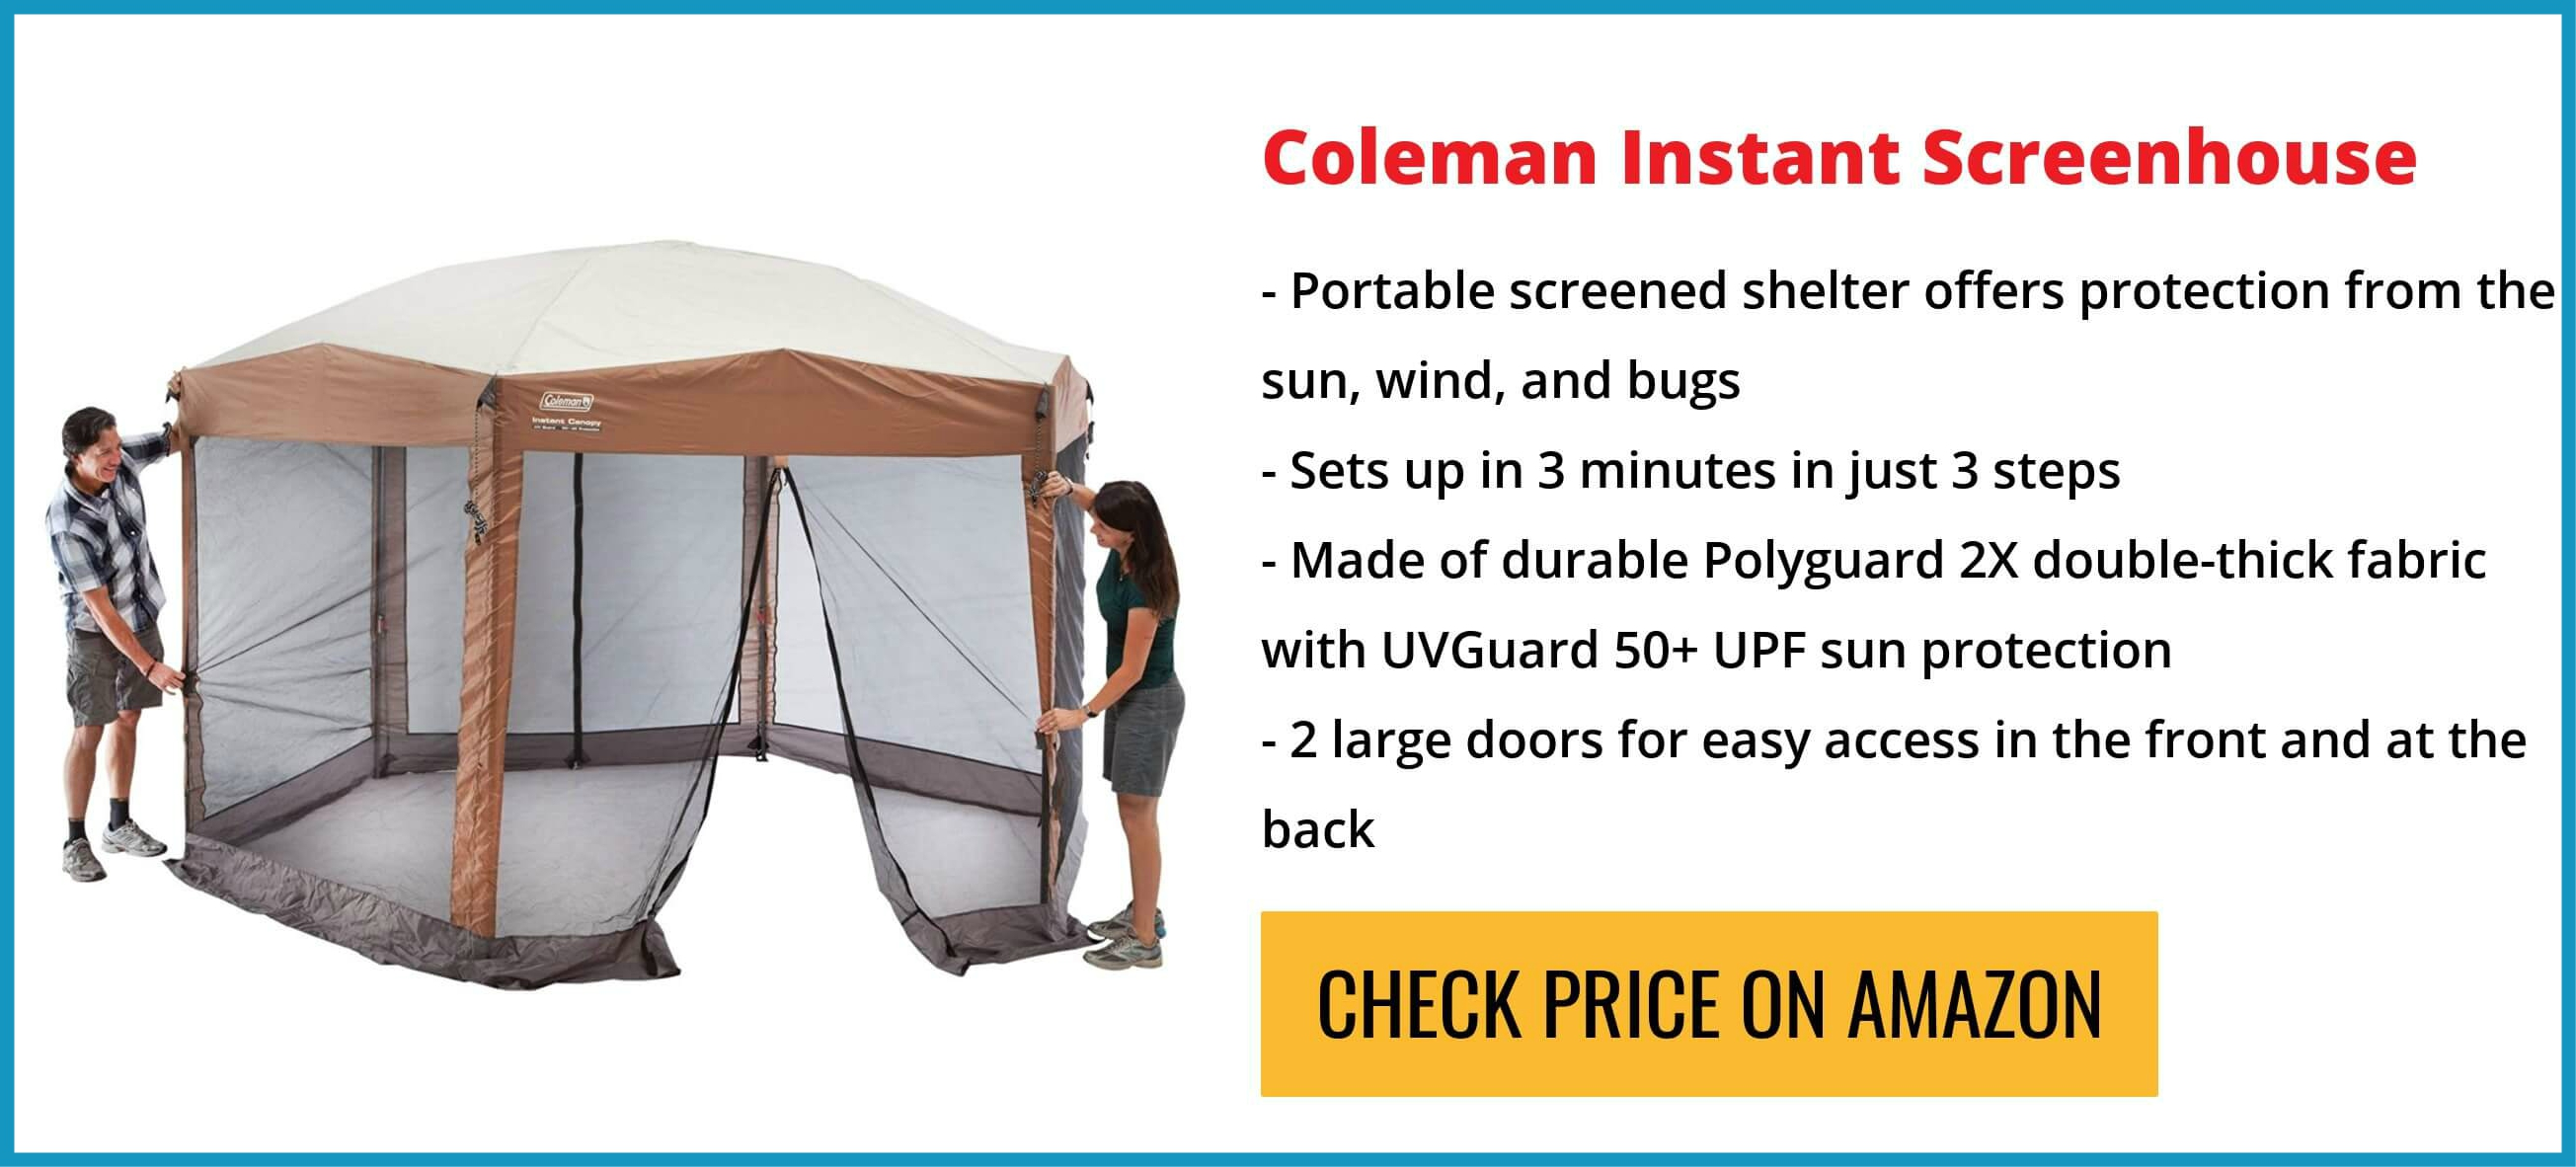 Coleman Instant Screened Canopy Review